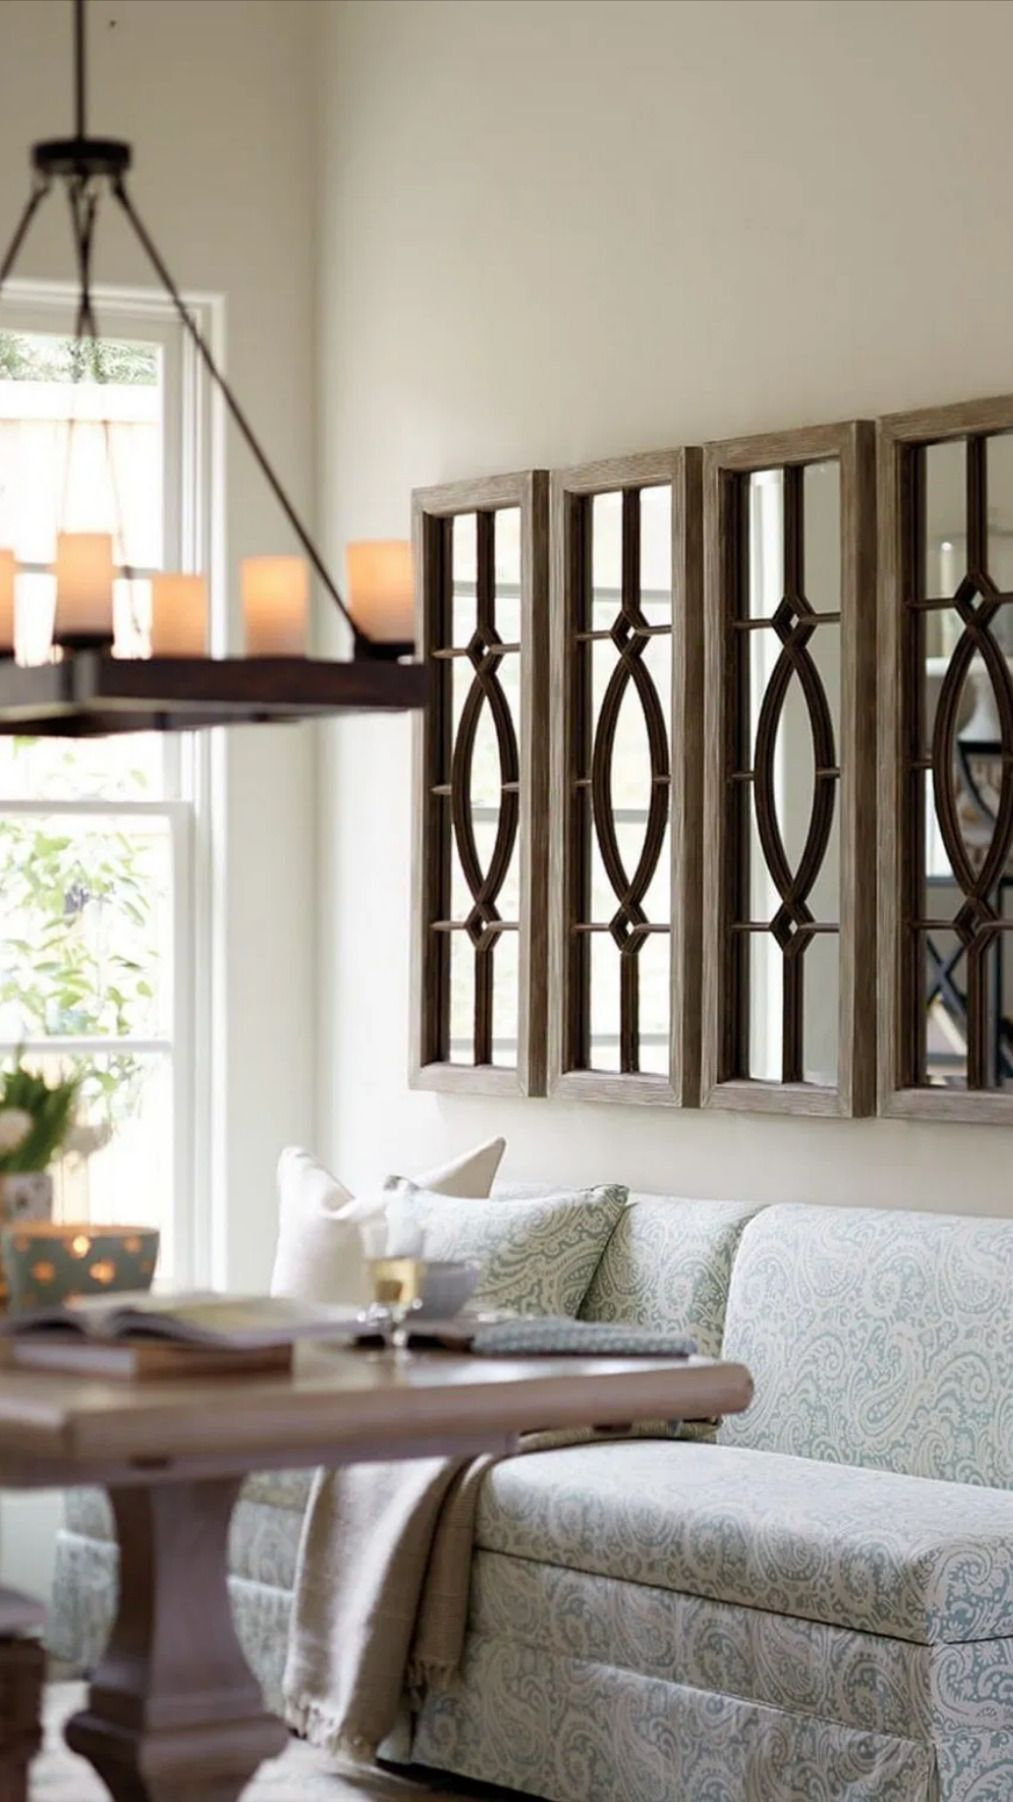 9 Amazing Living Room Wall Decor Ideas You Can Try An Immersive Guide By Home Decor